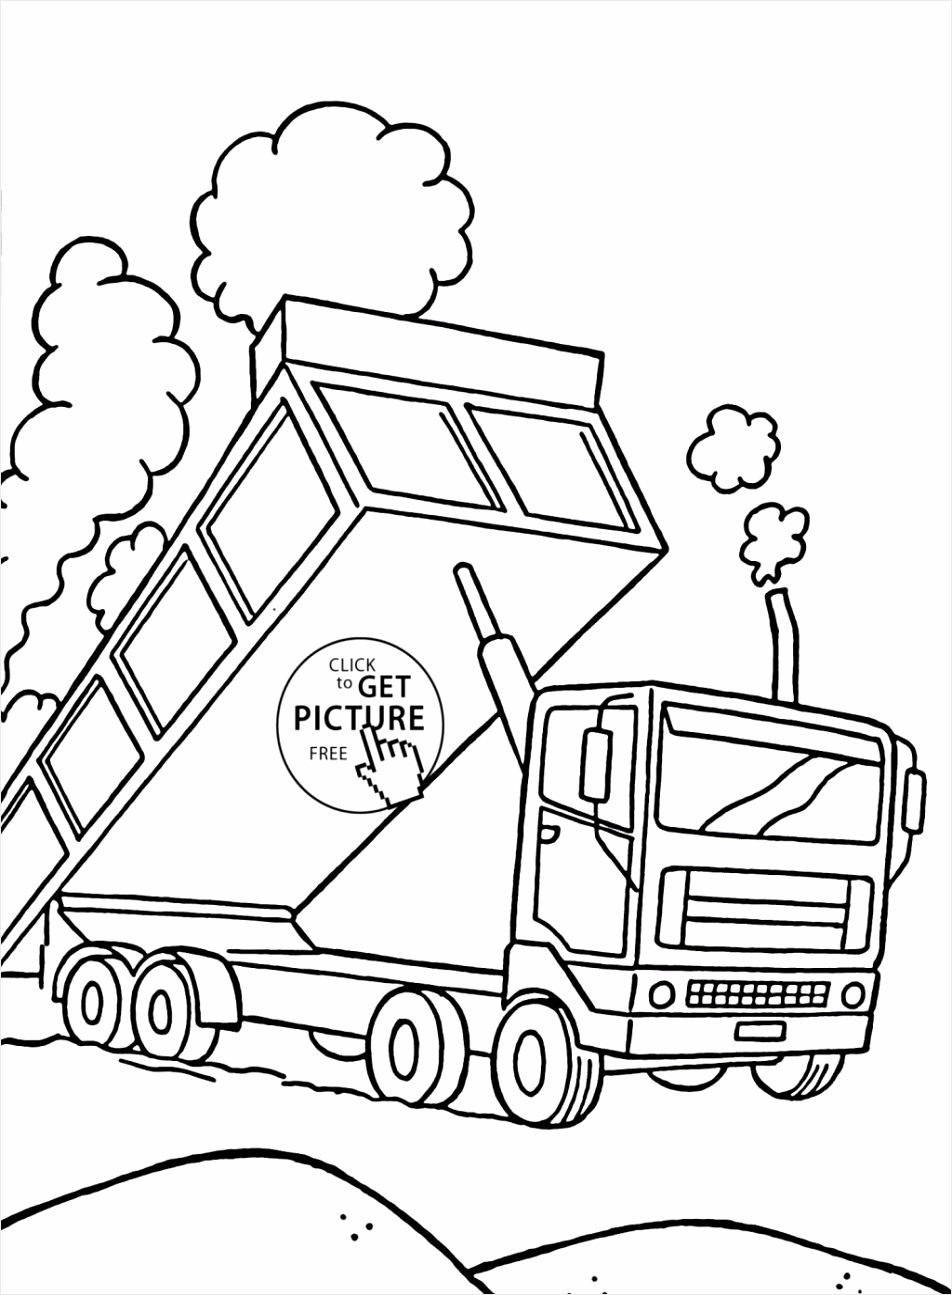 garbage truck pictures to color beautiful dumper truck coloring page for kids transportation coloring of garbage truck pictures to color 1024x1378 opeyr